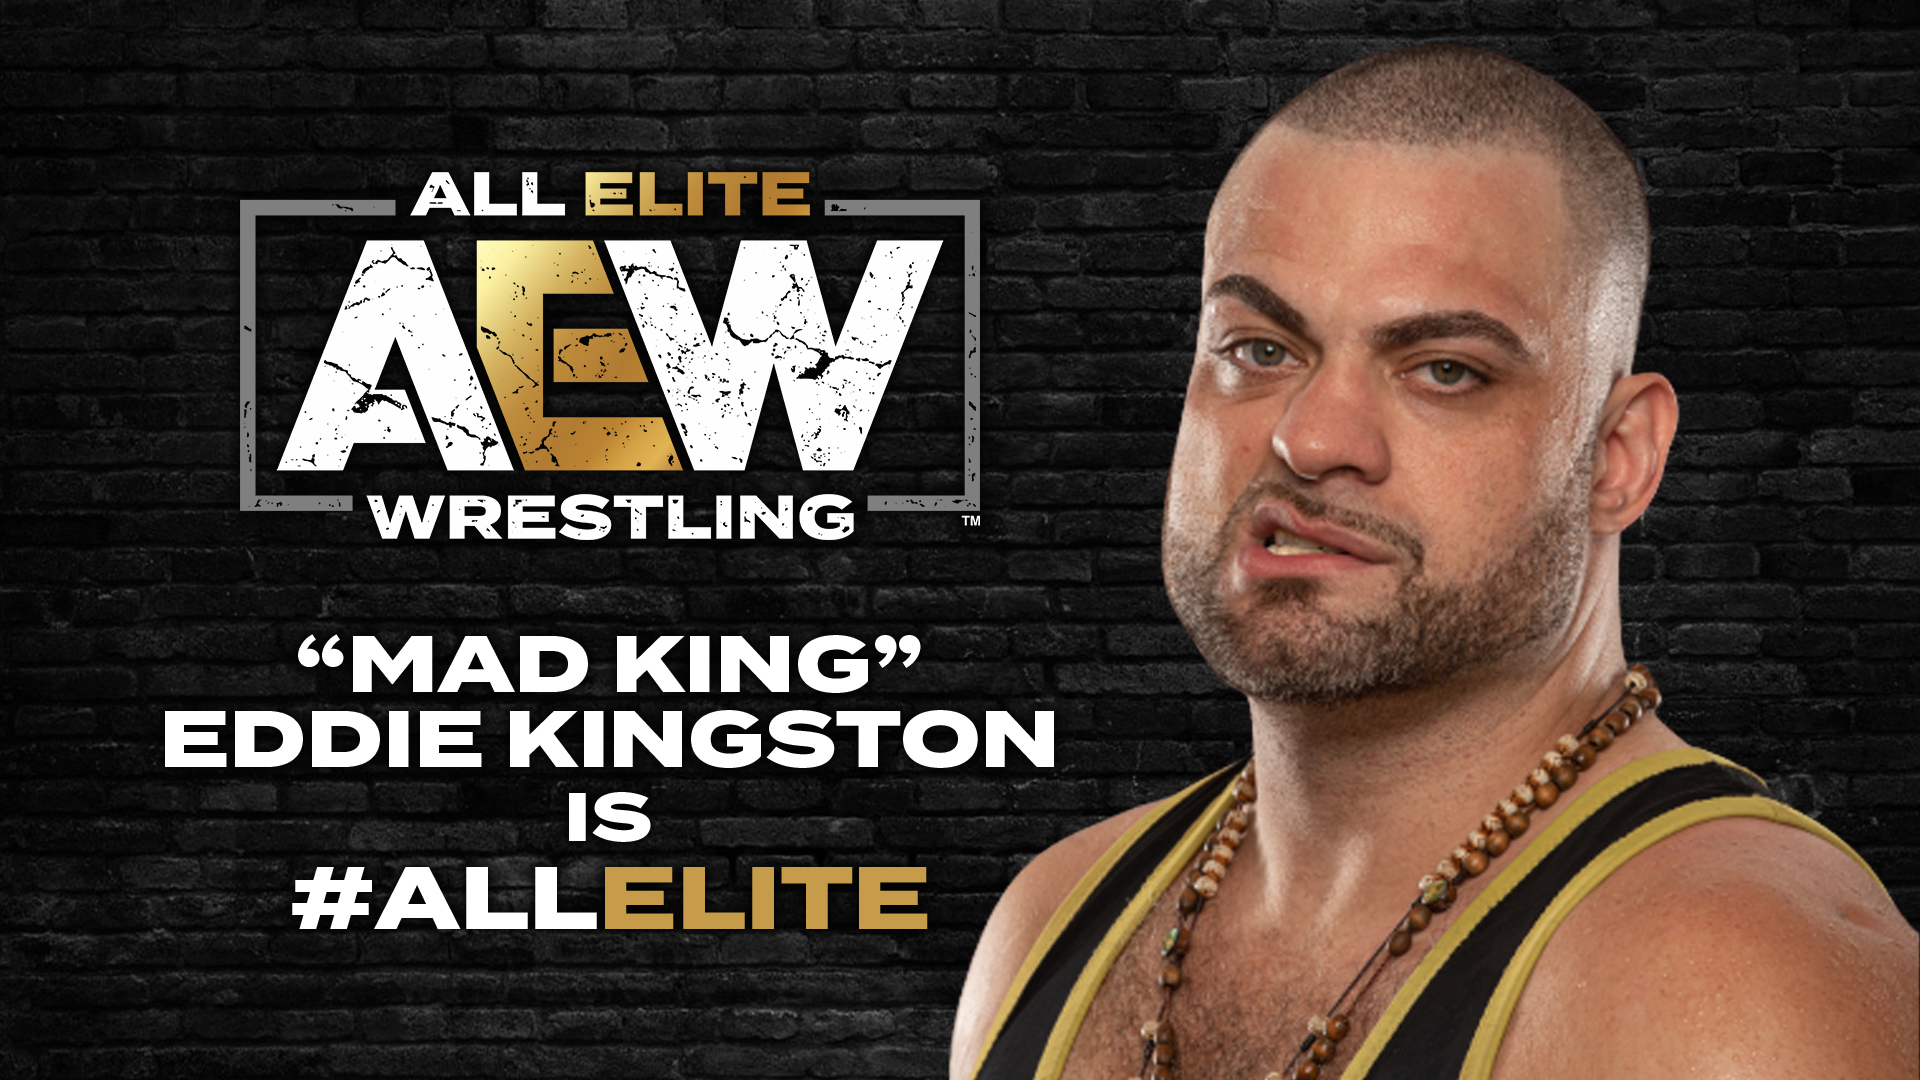 Eddie Kingston is All Elite